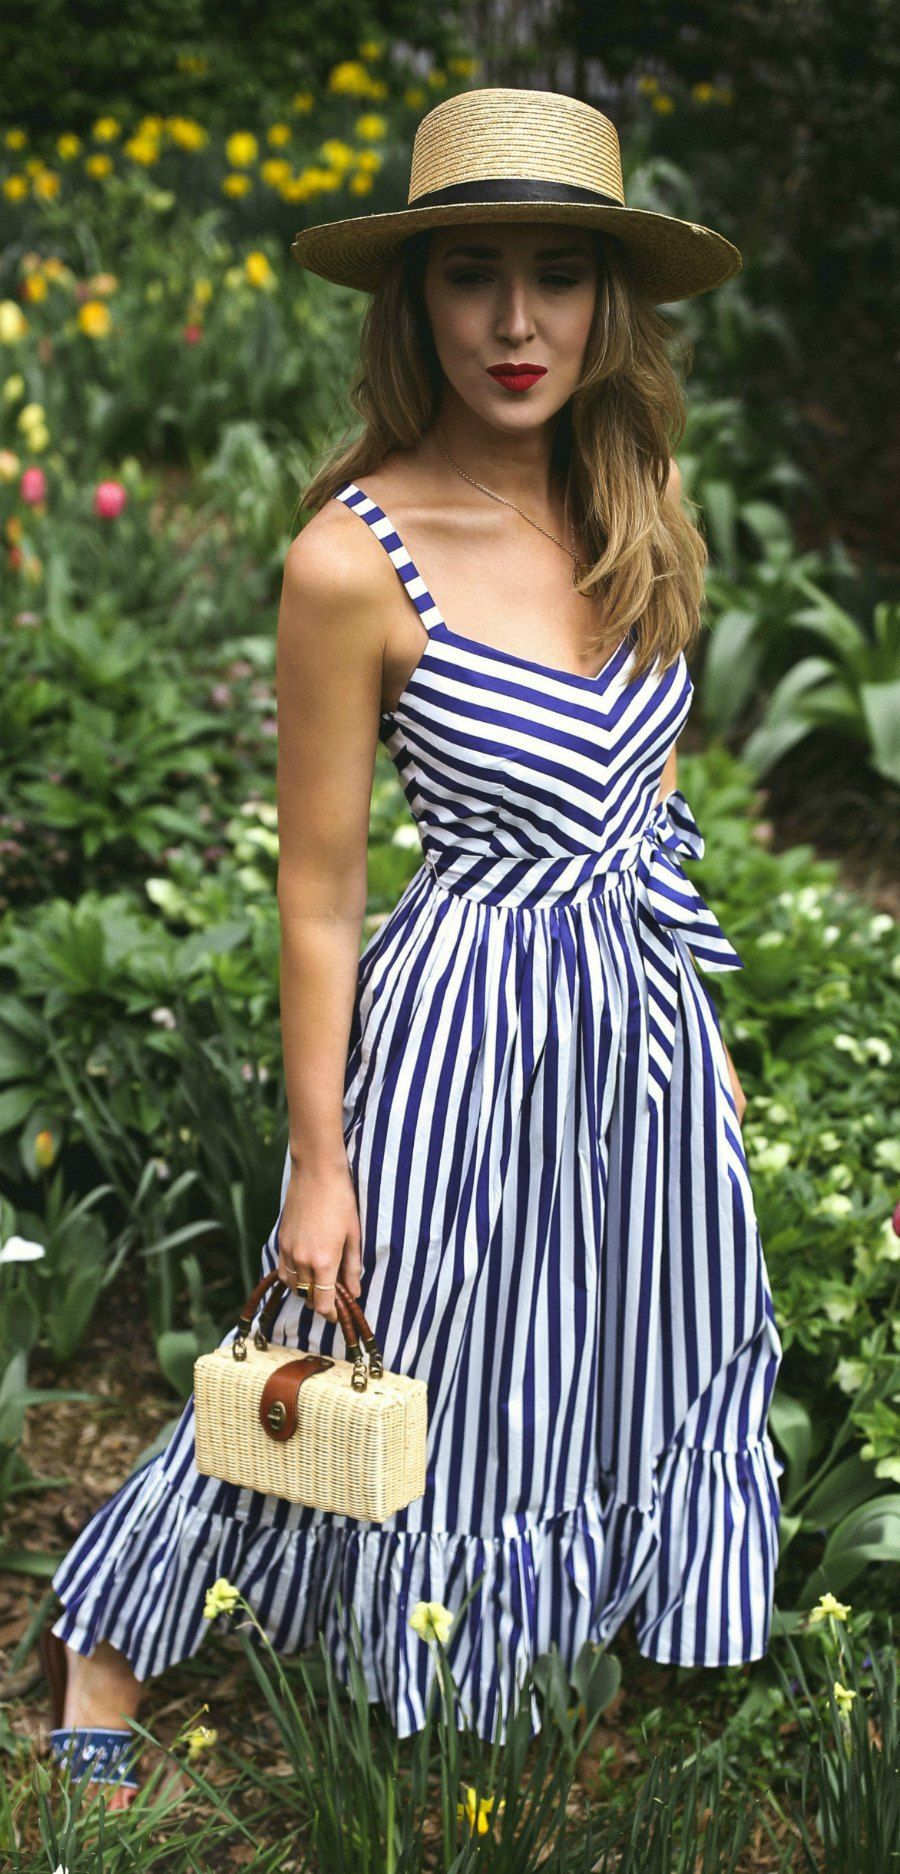 30 Dresses In 30 Days What To Wear To A Picnic Navy And White Stripe Maxi Dress Embroidered Navy Slides Small Woven Looks Vestidos Vestido Listrado Moda [ 1874 x 900 Pixel ]